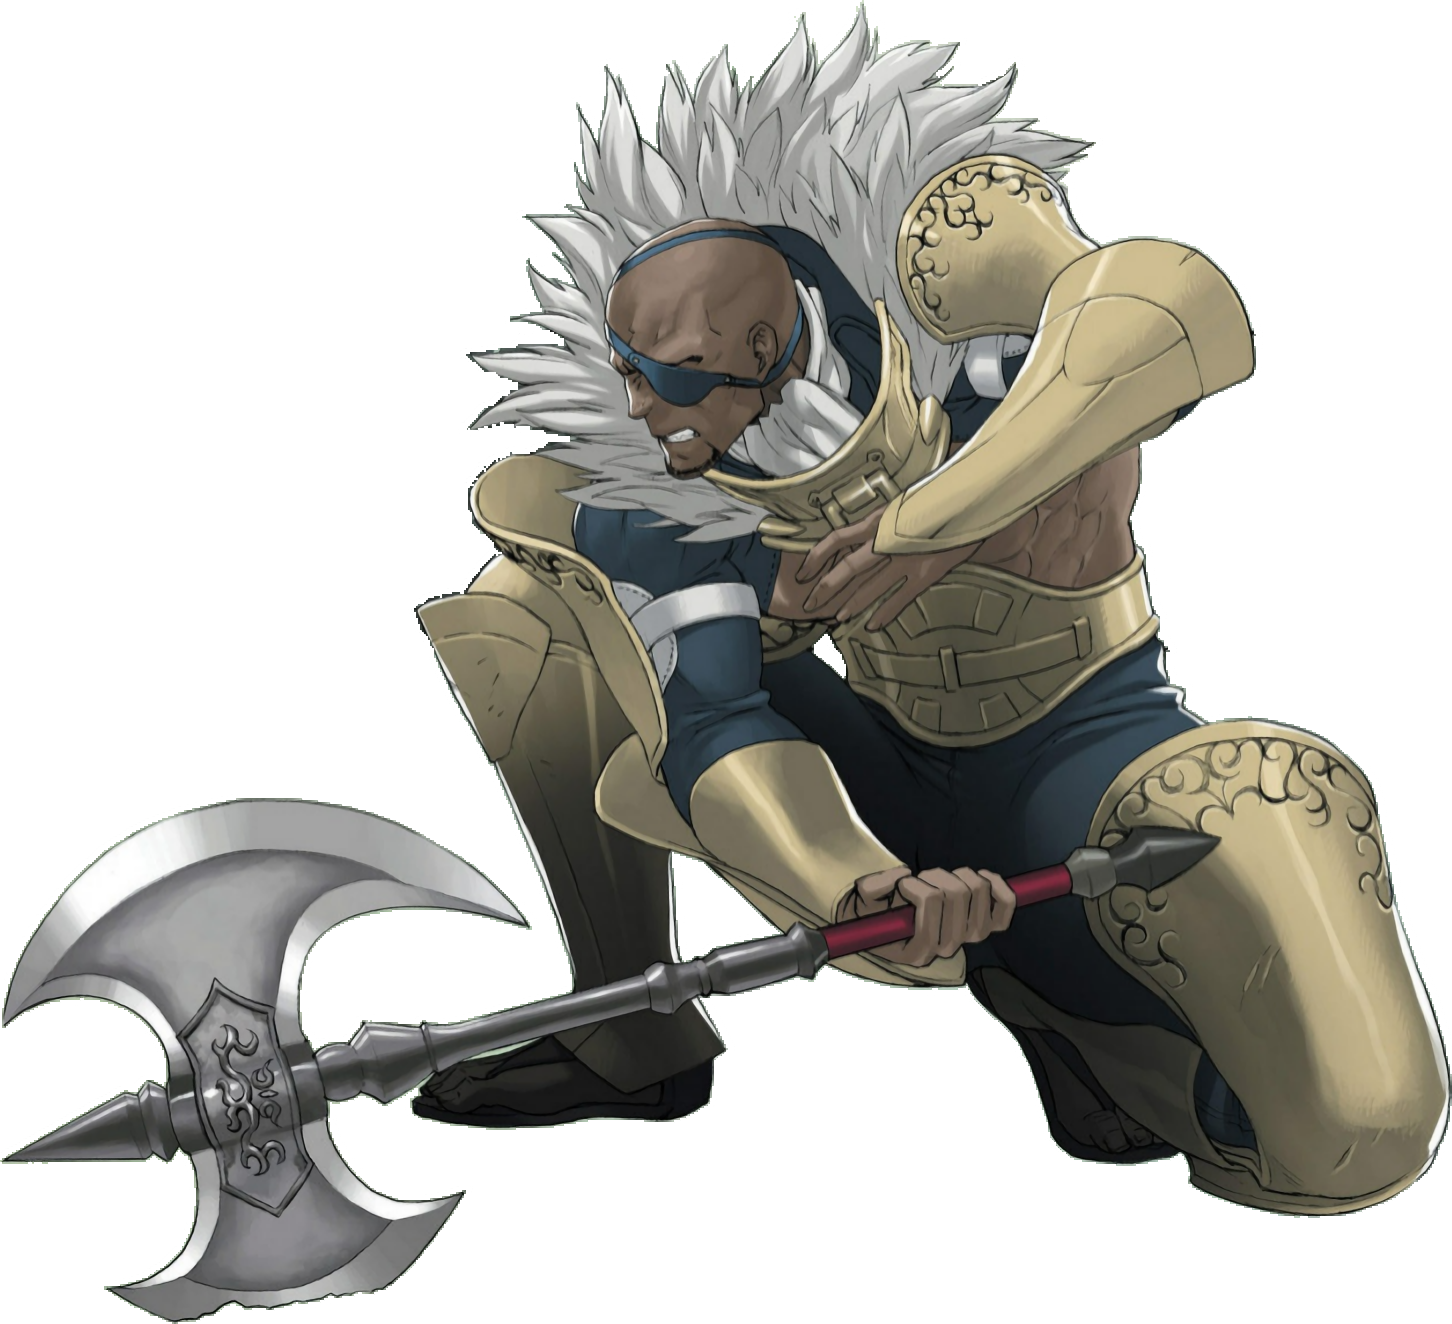 Basilio | Fire Emblem Wiki | FANDOM powered by Wikia